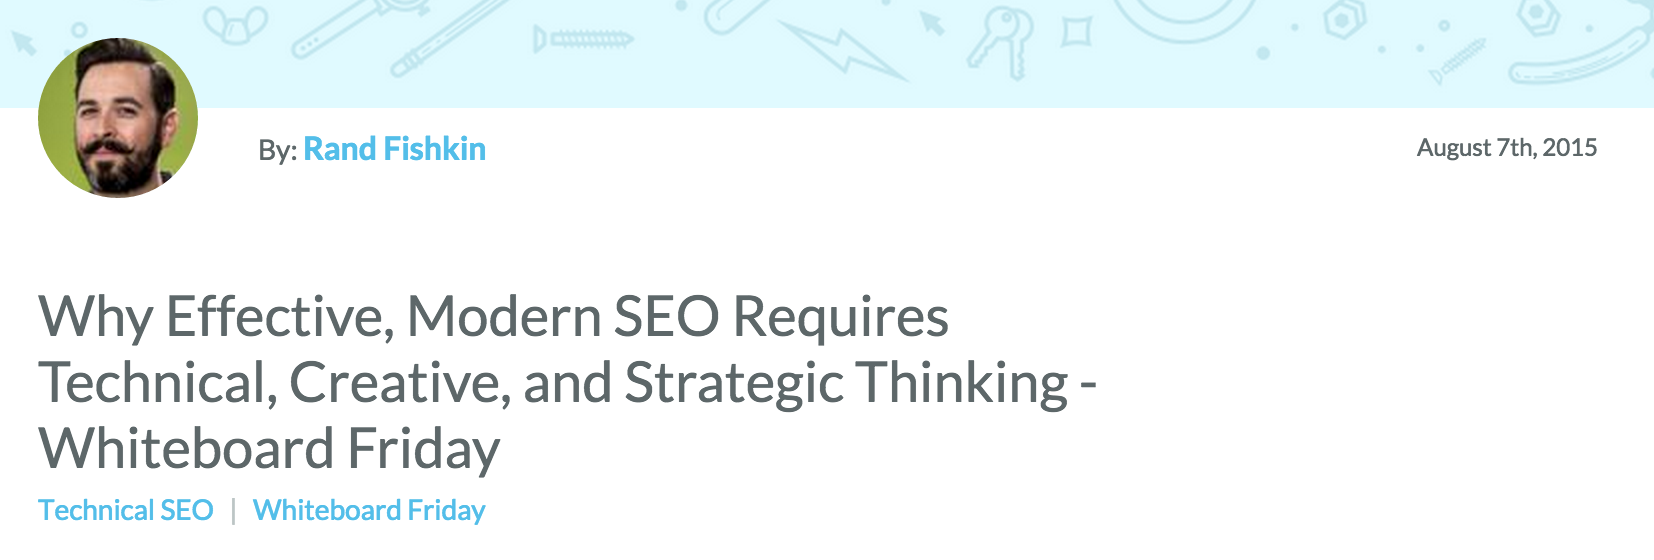 SEO Requires Technical Skills